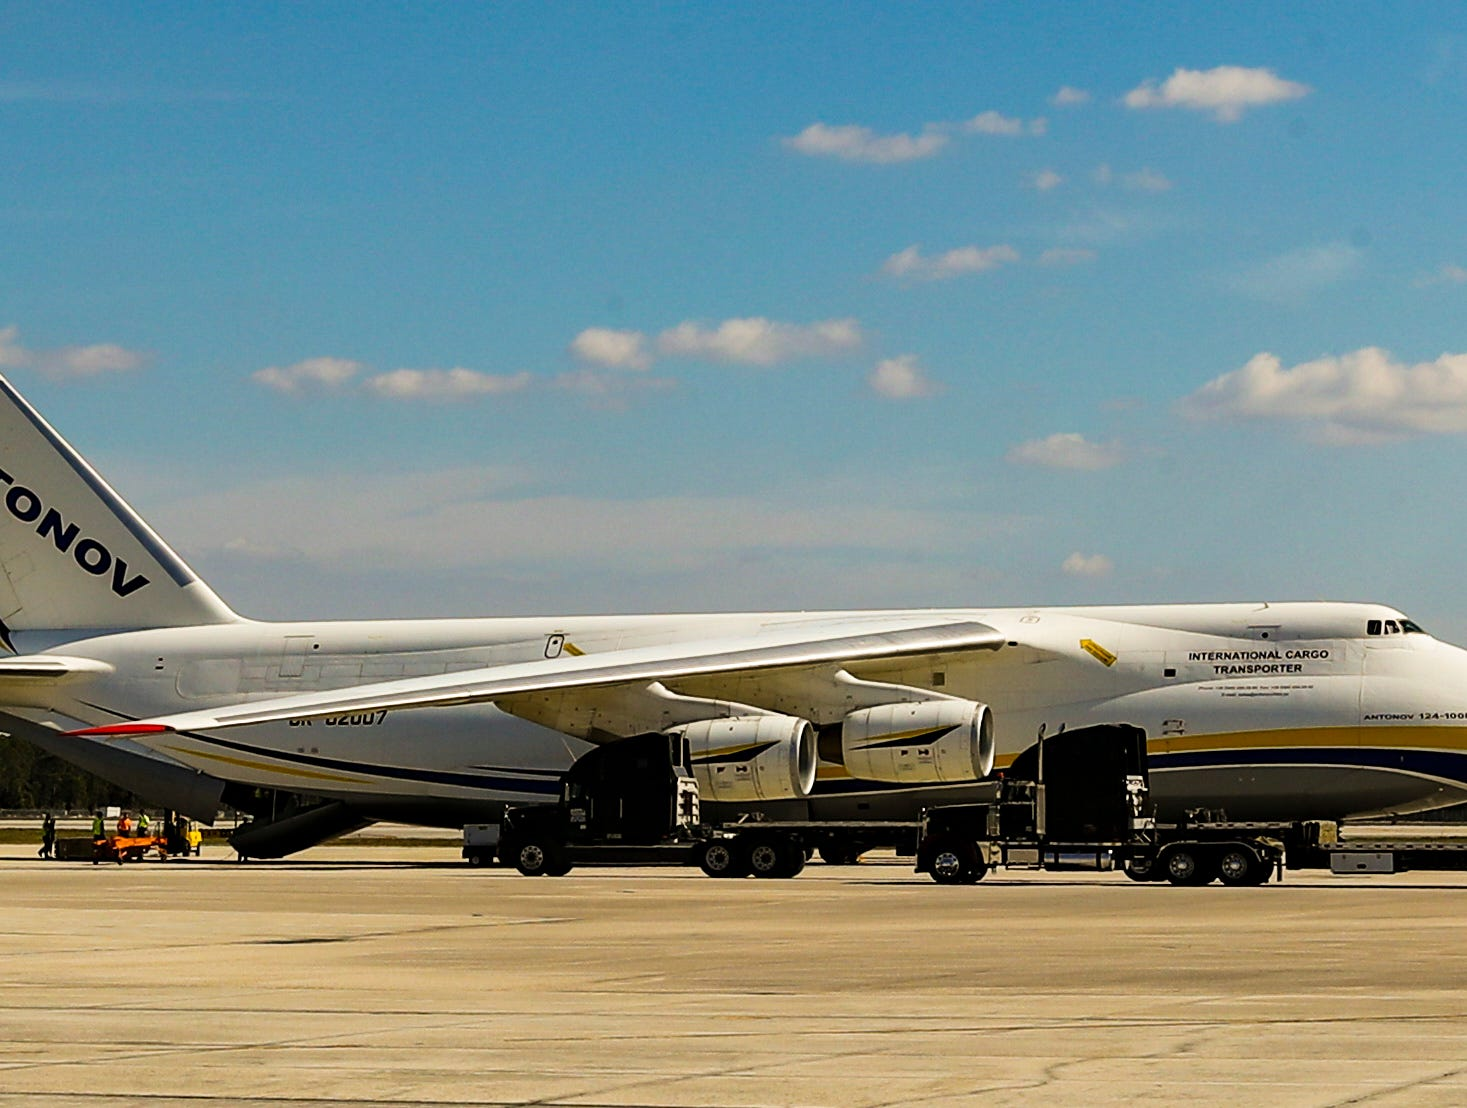 Southwest Florida got the chance to observe one of the largest aircraft in the world, a Russian-made Antonov An-124, land and unload cargo at Southwest Florida International Airport in Fort Myers on Tuesday, Feb. 5, 2019. The Antonov can carry up to 170 tons of cargo and up to 88 passengers.